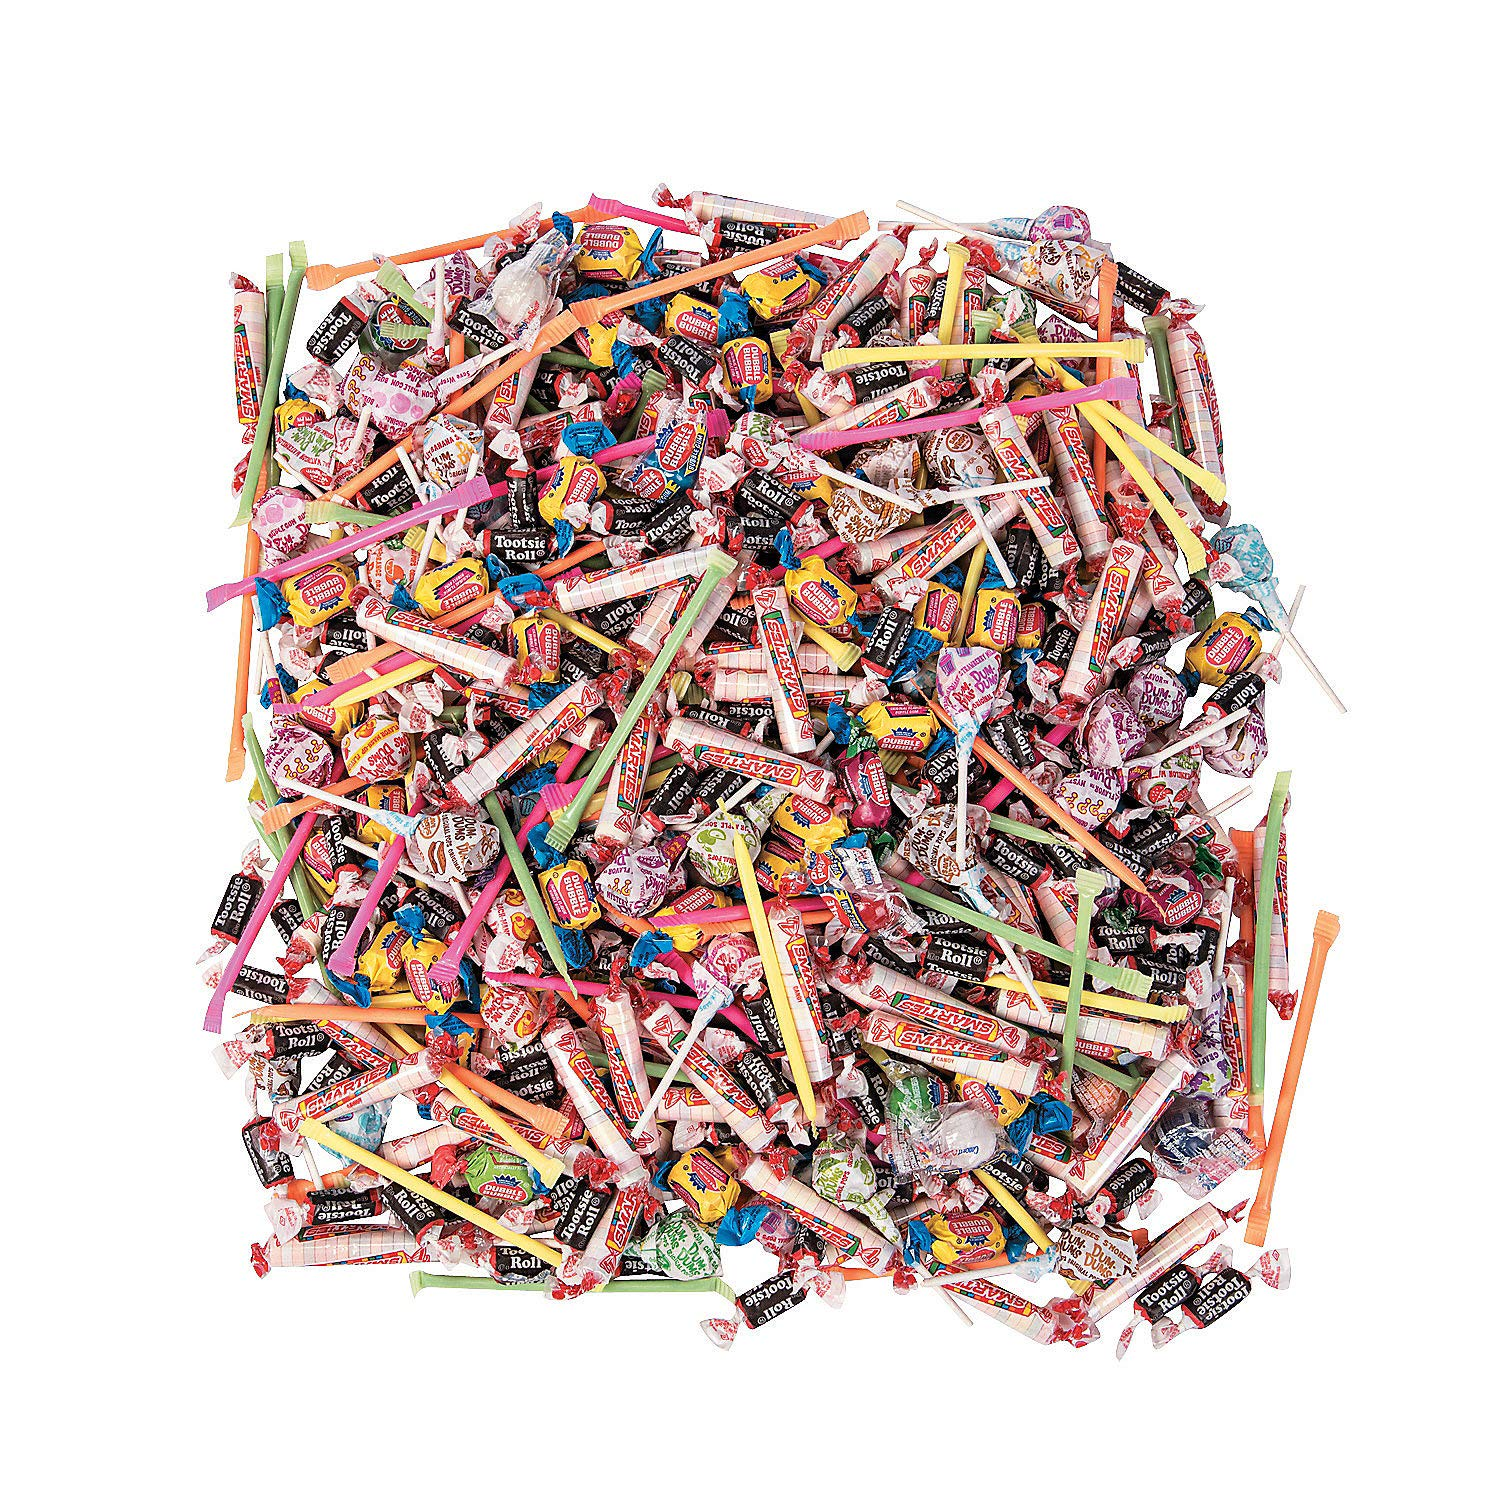 Bulk Candy Individually Wrapped 1000 Pieces (9 lbs) Perfect Parties, Halloween, Parades and Pinatas by Fun Express